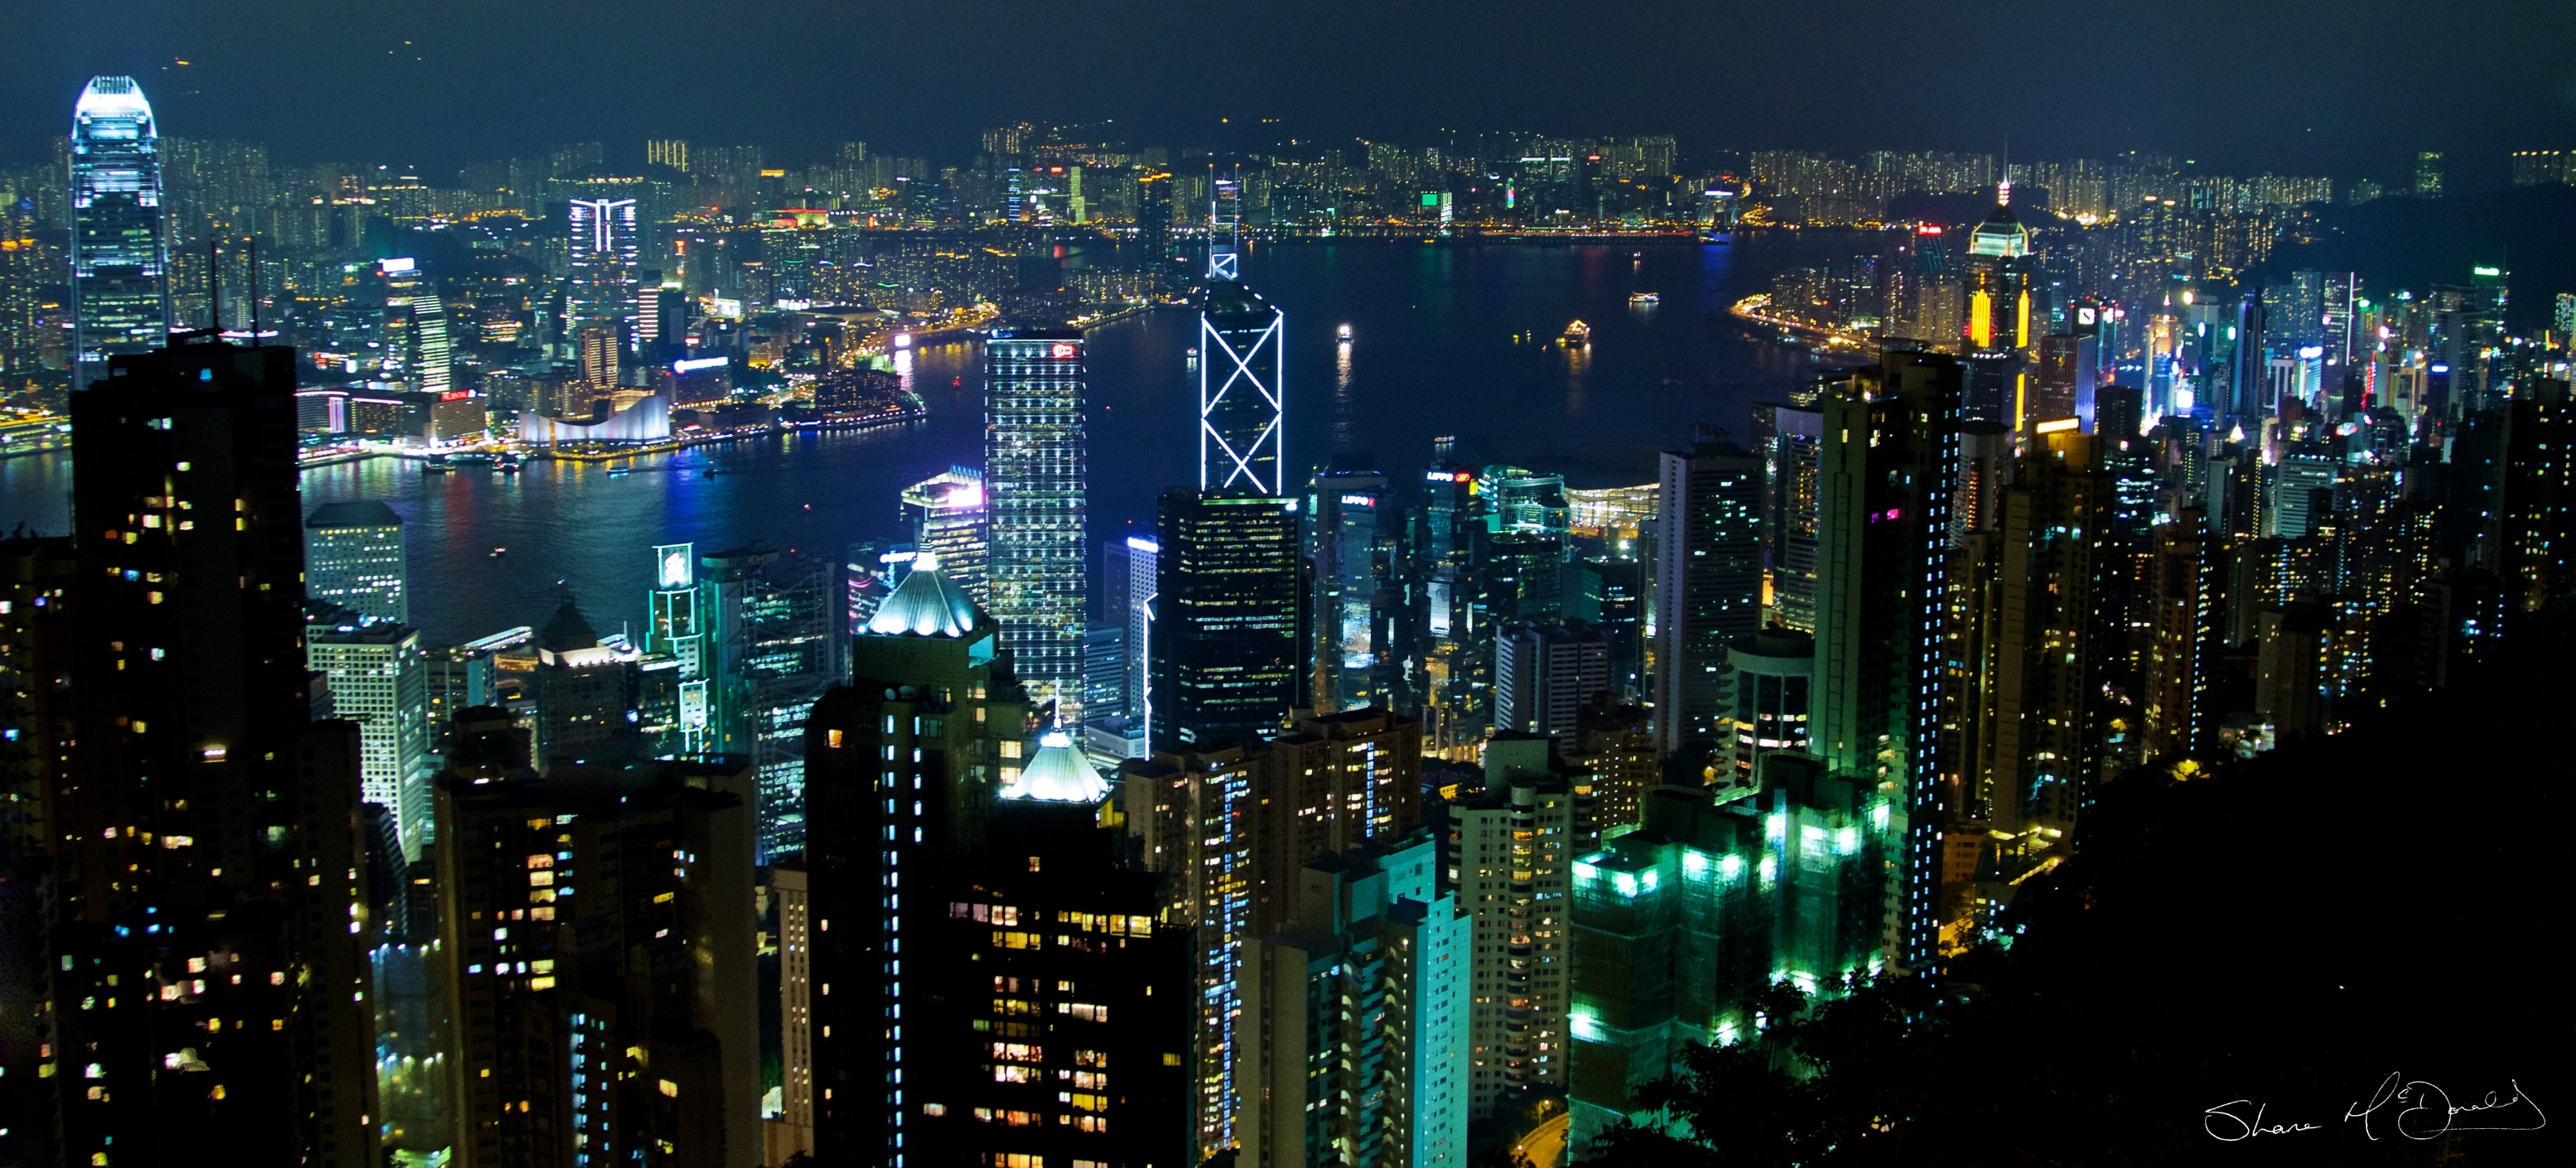 Hong Kong by Night from the Peak, Photo of Hong Kong, Hong Kong Night, Skyscrapers, Photo of Hong Kong, by Night, Night Photo of Hong Kong